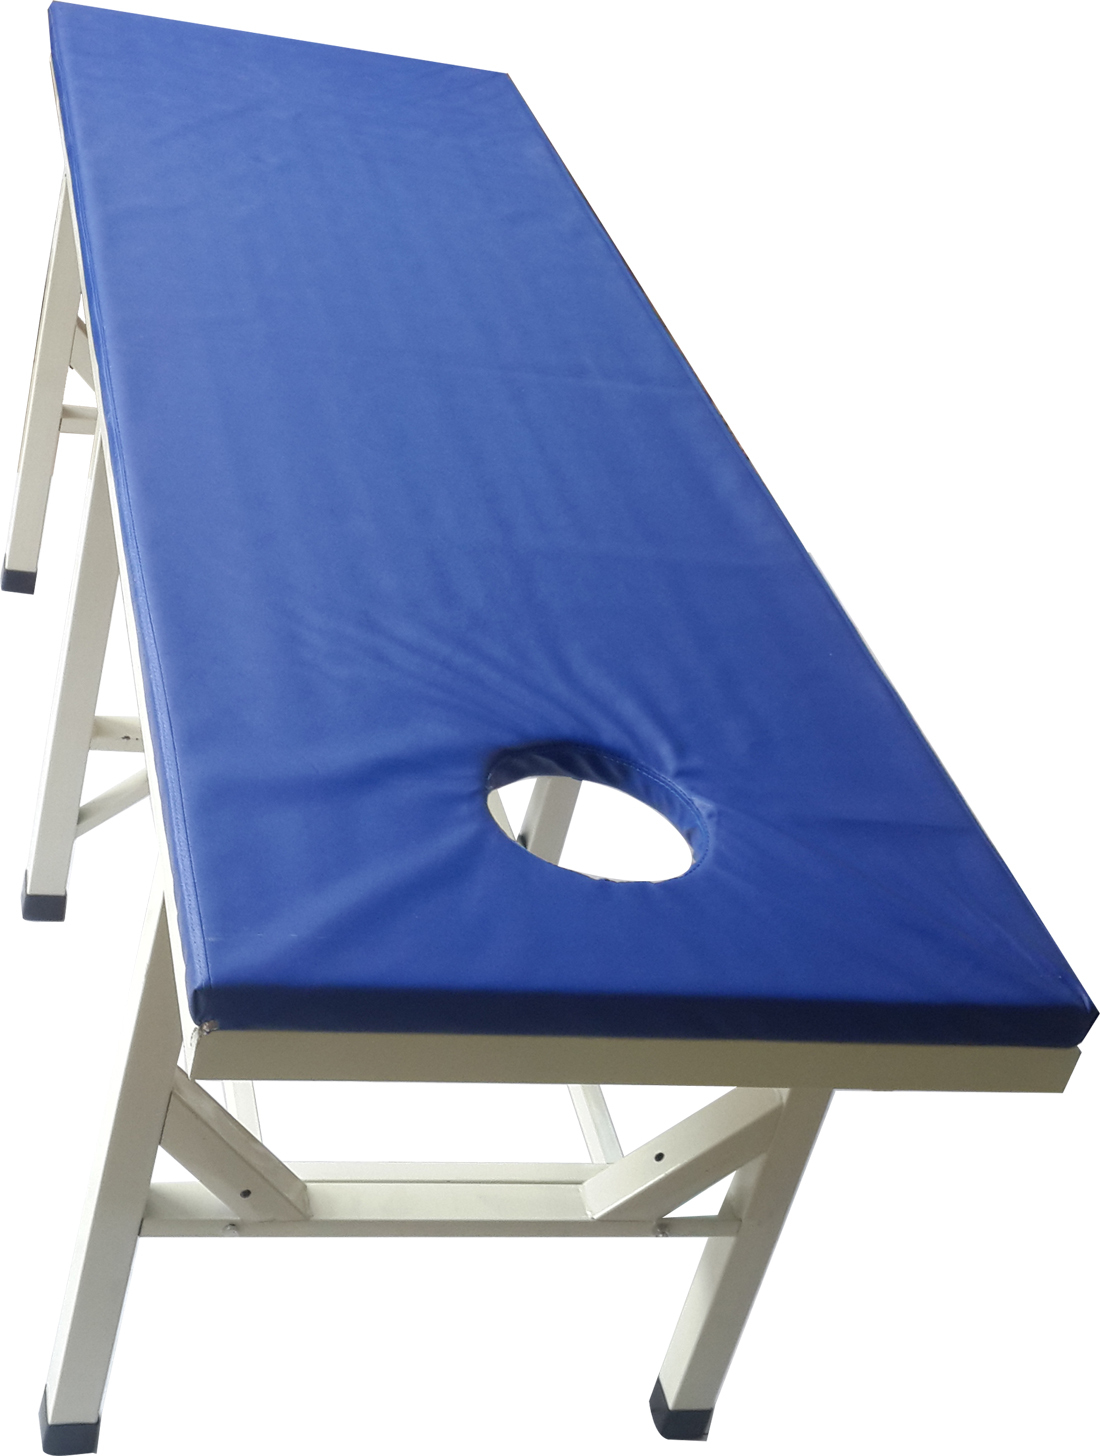 Massage Table - Examination Bed